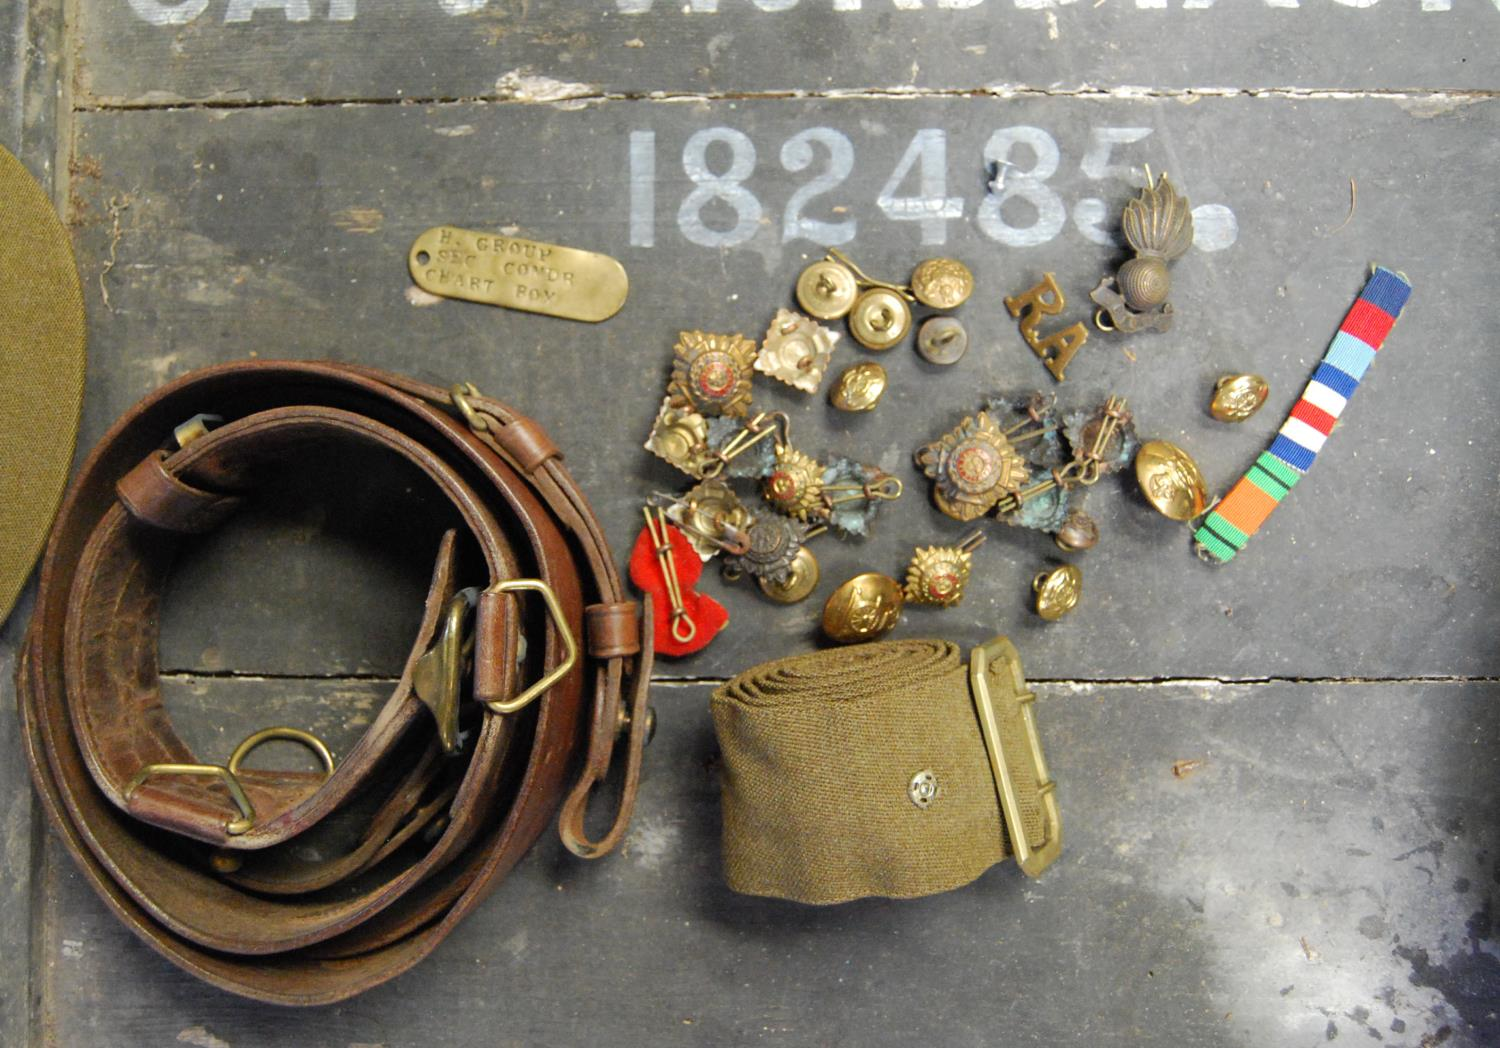 Military ephemera relating to Captain WR Dixon, 182485 Royal Artillery including cap, trench coat, - Image 2 of 5